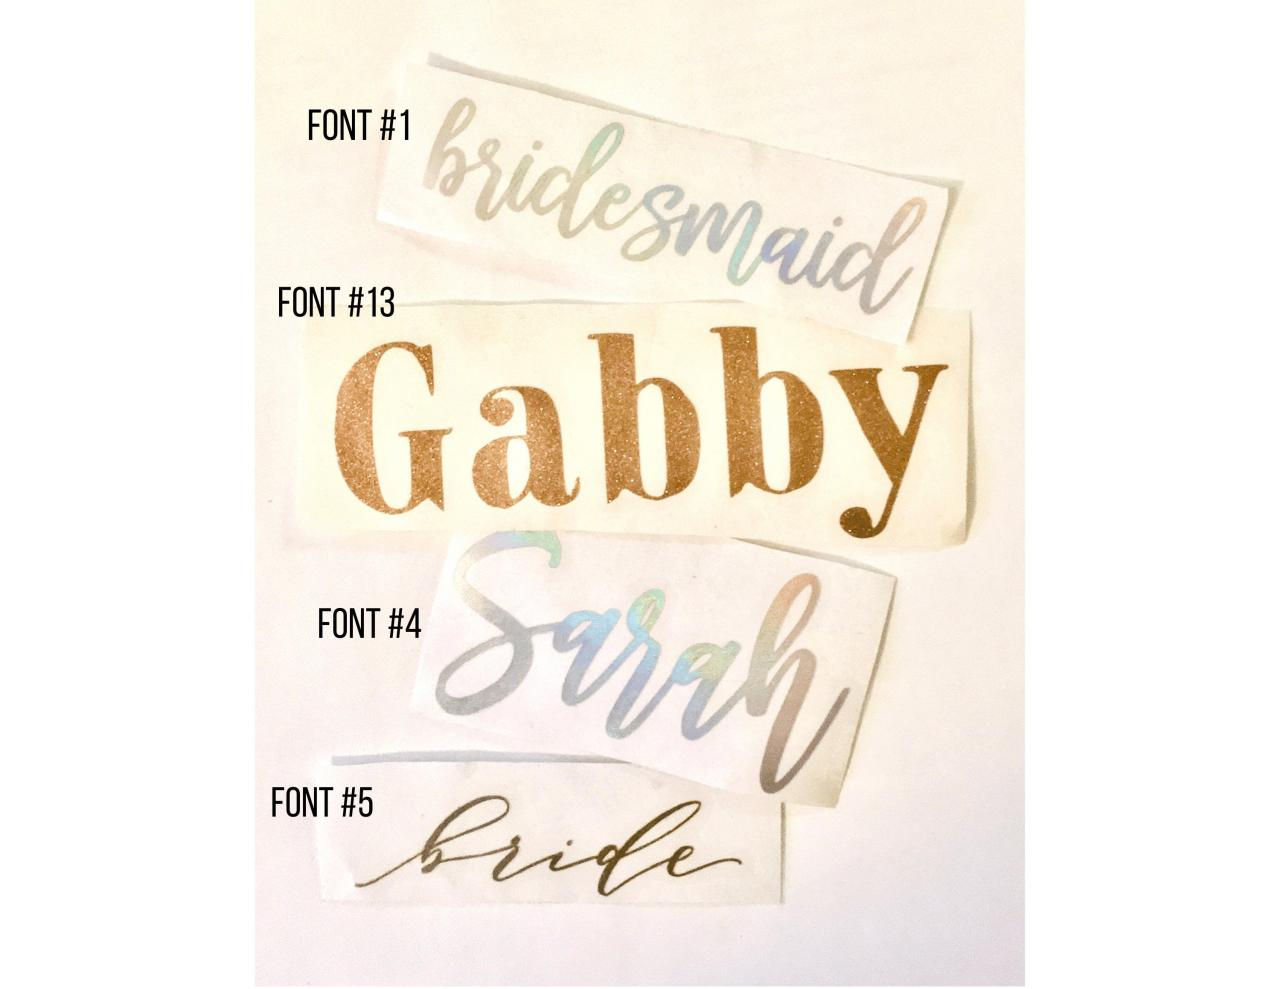 Custom Vinyl Decal | Personalized Name or Word | Bridesmaid Proposal Box Decal | Tumbler, Wine, Champagne Glass Decal | Bridal Party Gift